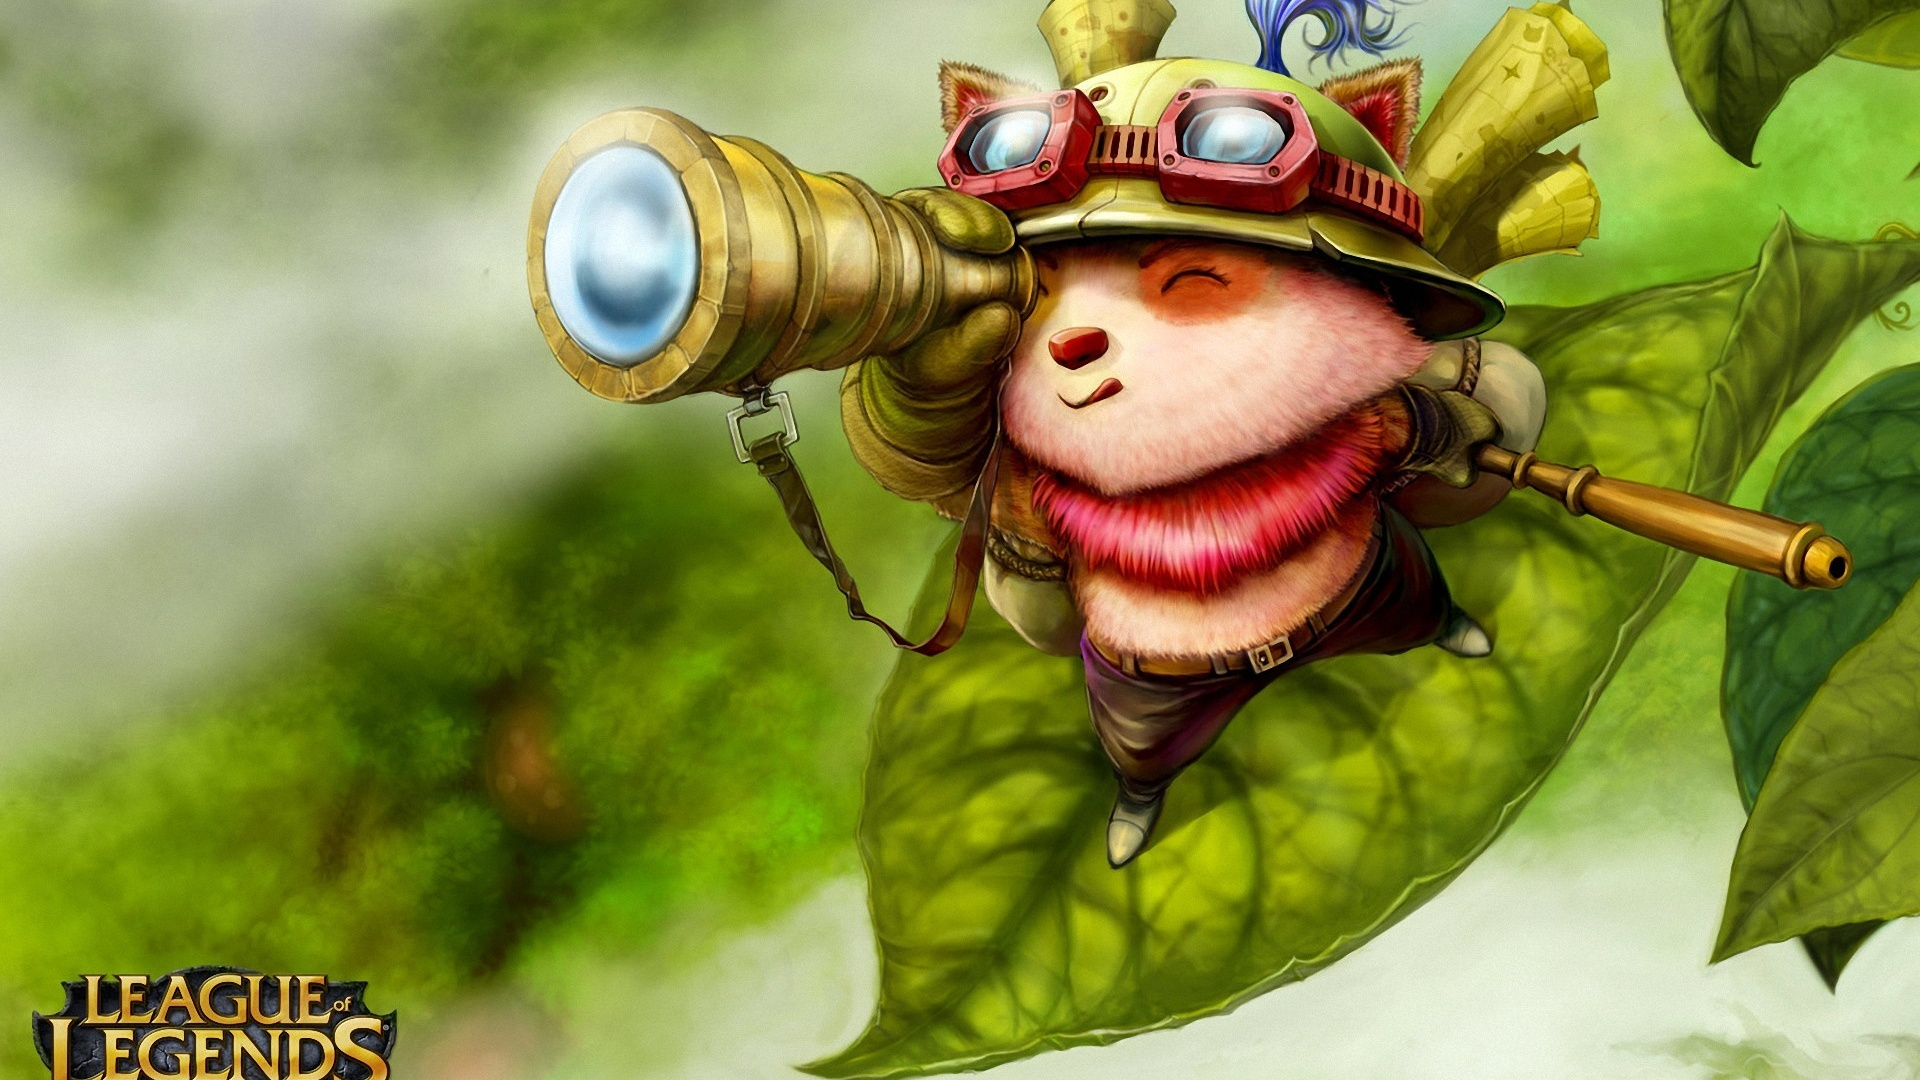 1920x1080 League of Legends Teemo desktop PC and Mac wallpaper